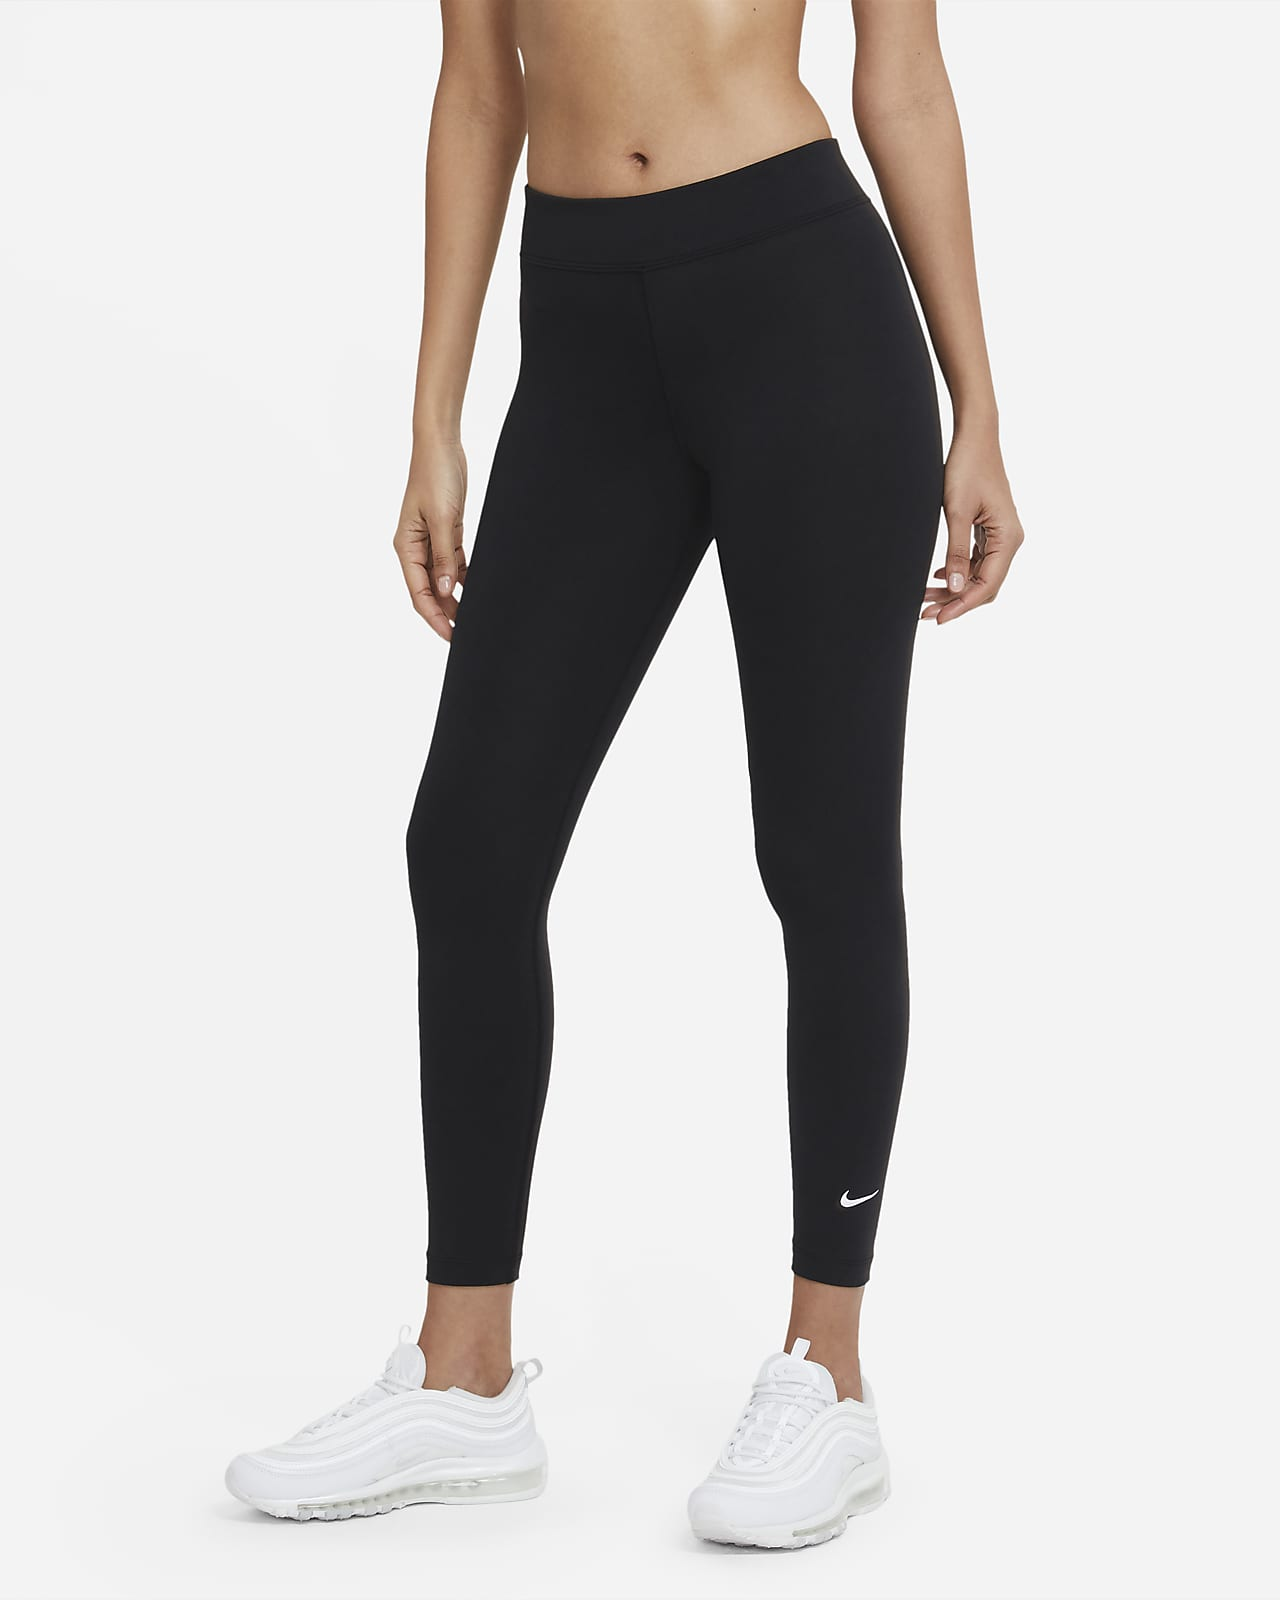 Nike Sportswear Essential Women's 7/8 Mid-Rise Leggings